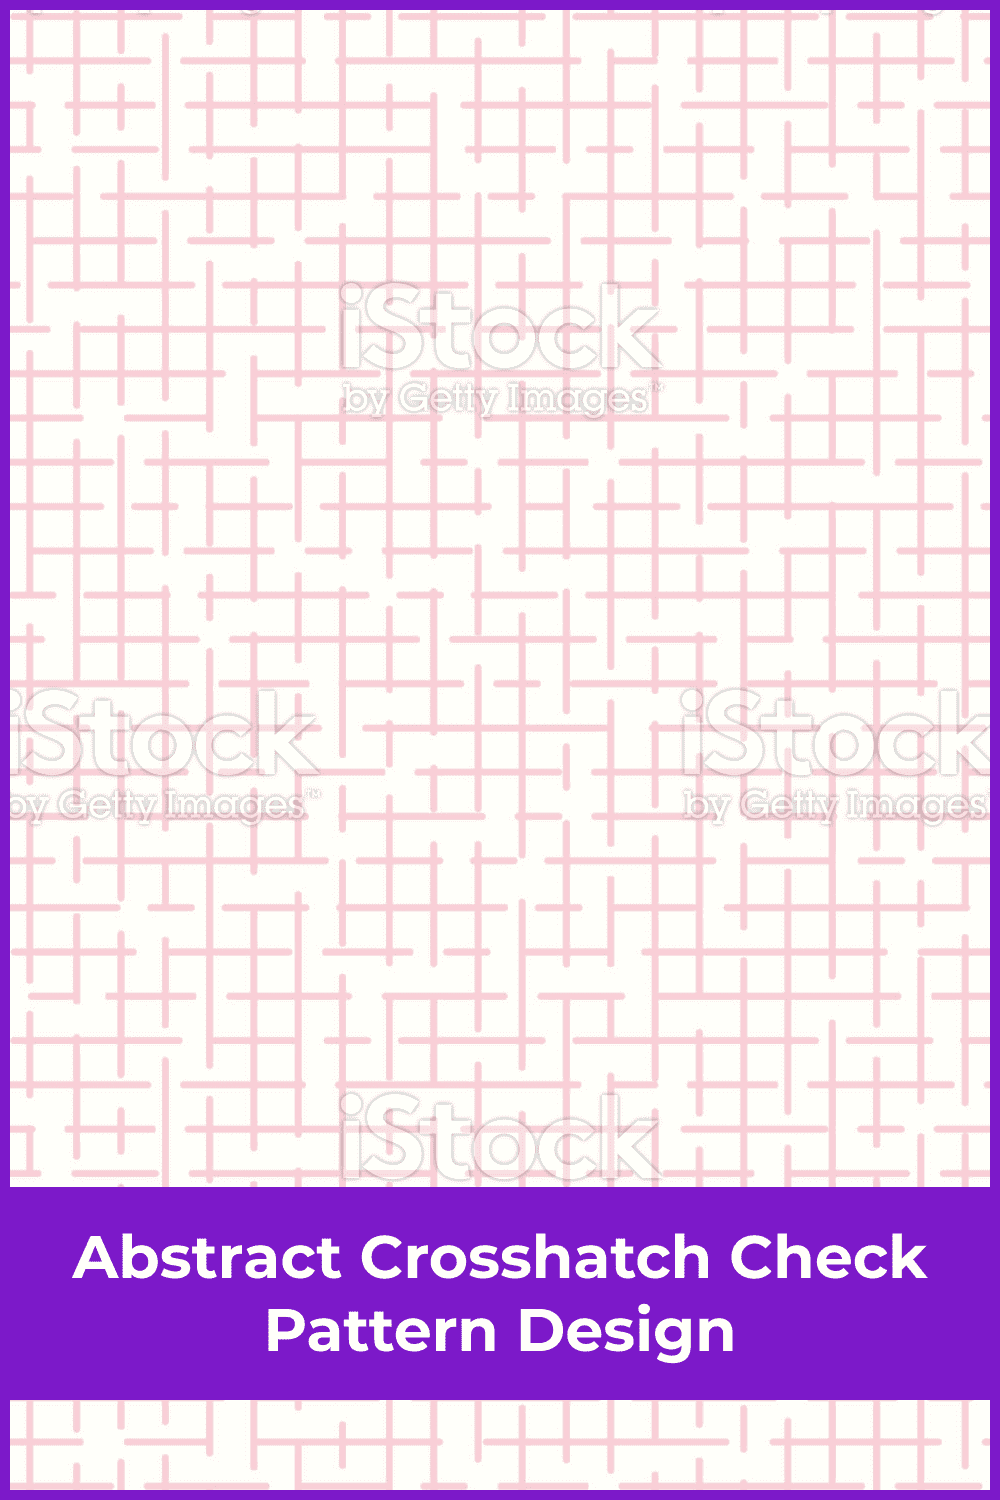 Abstract Crosshatch Check Pattern Design.